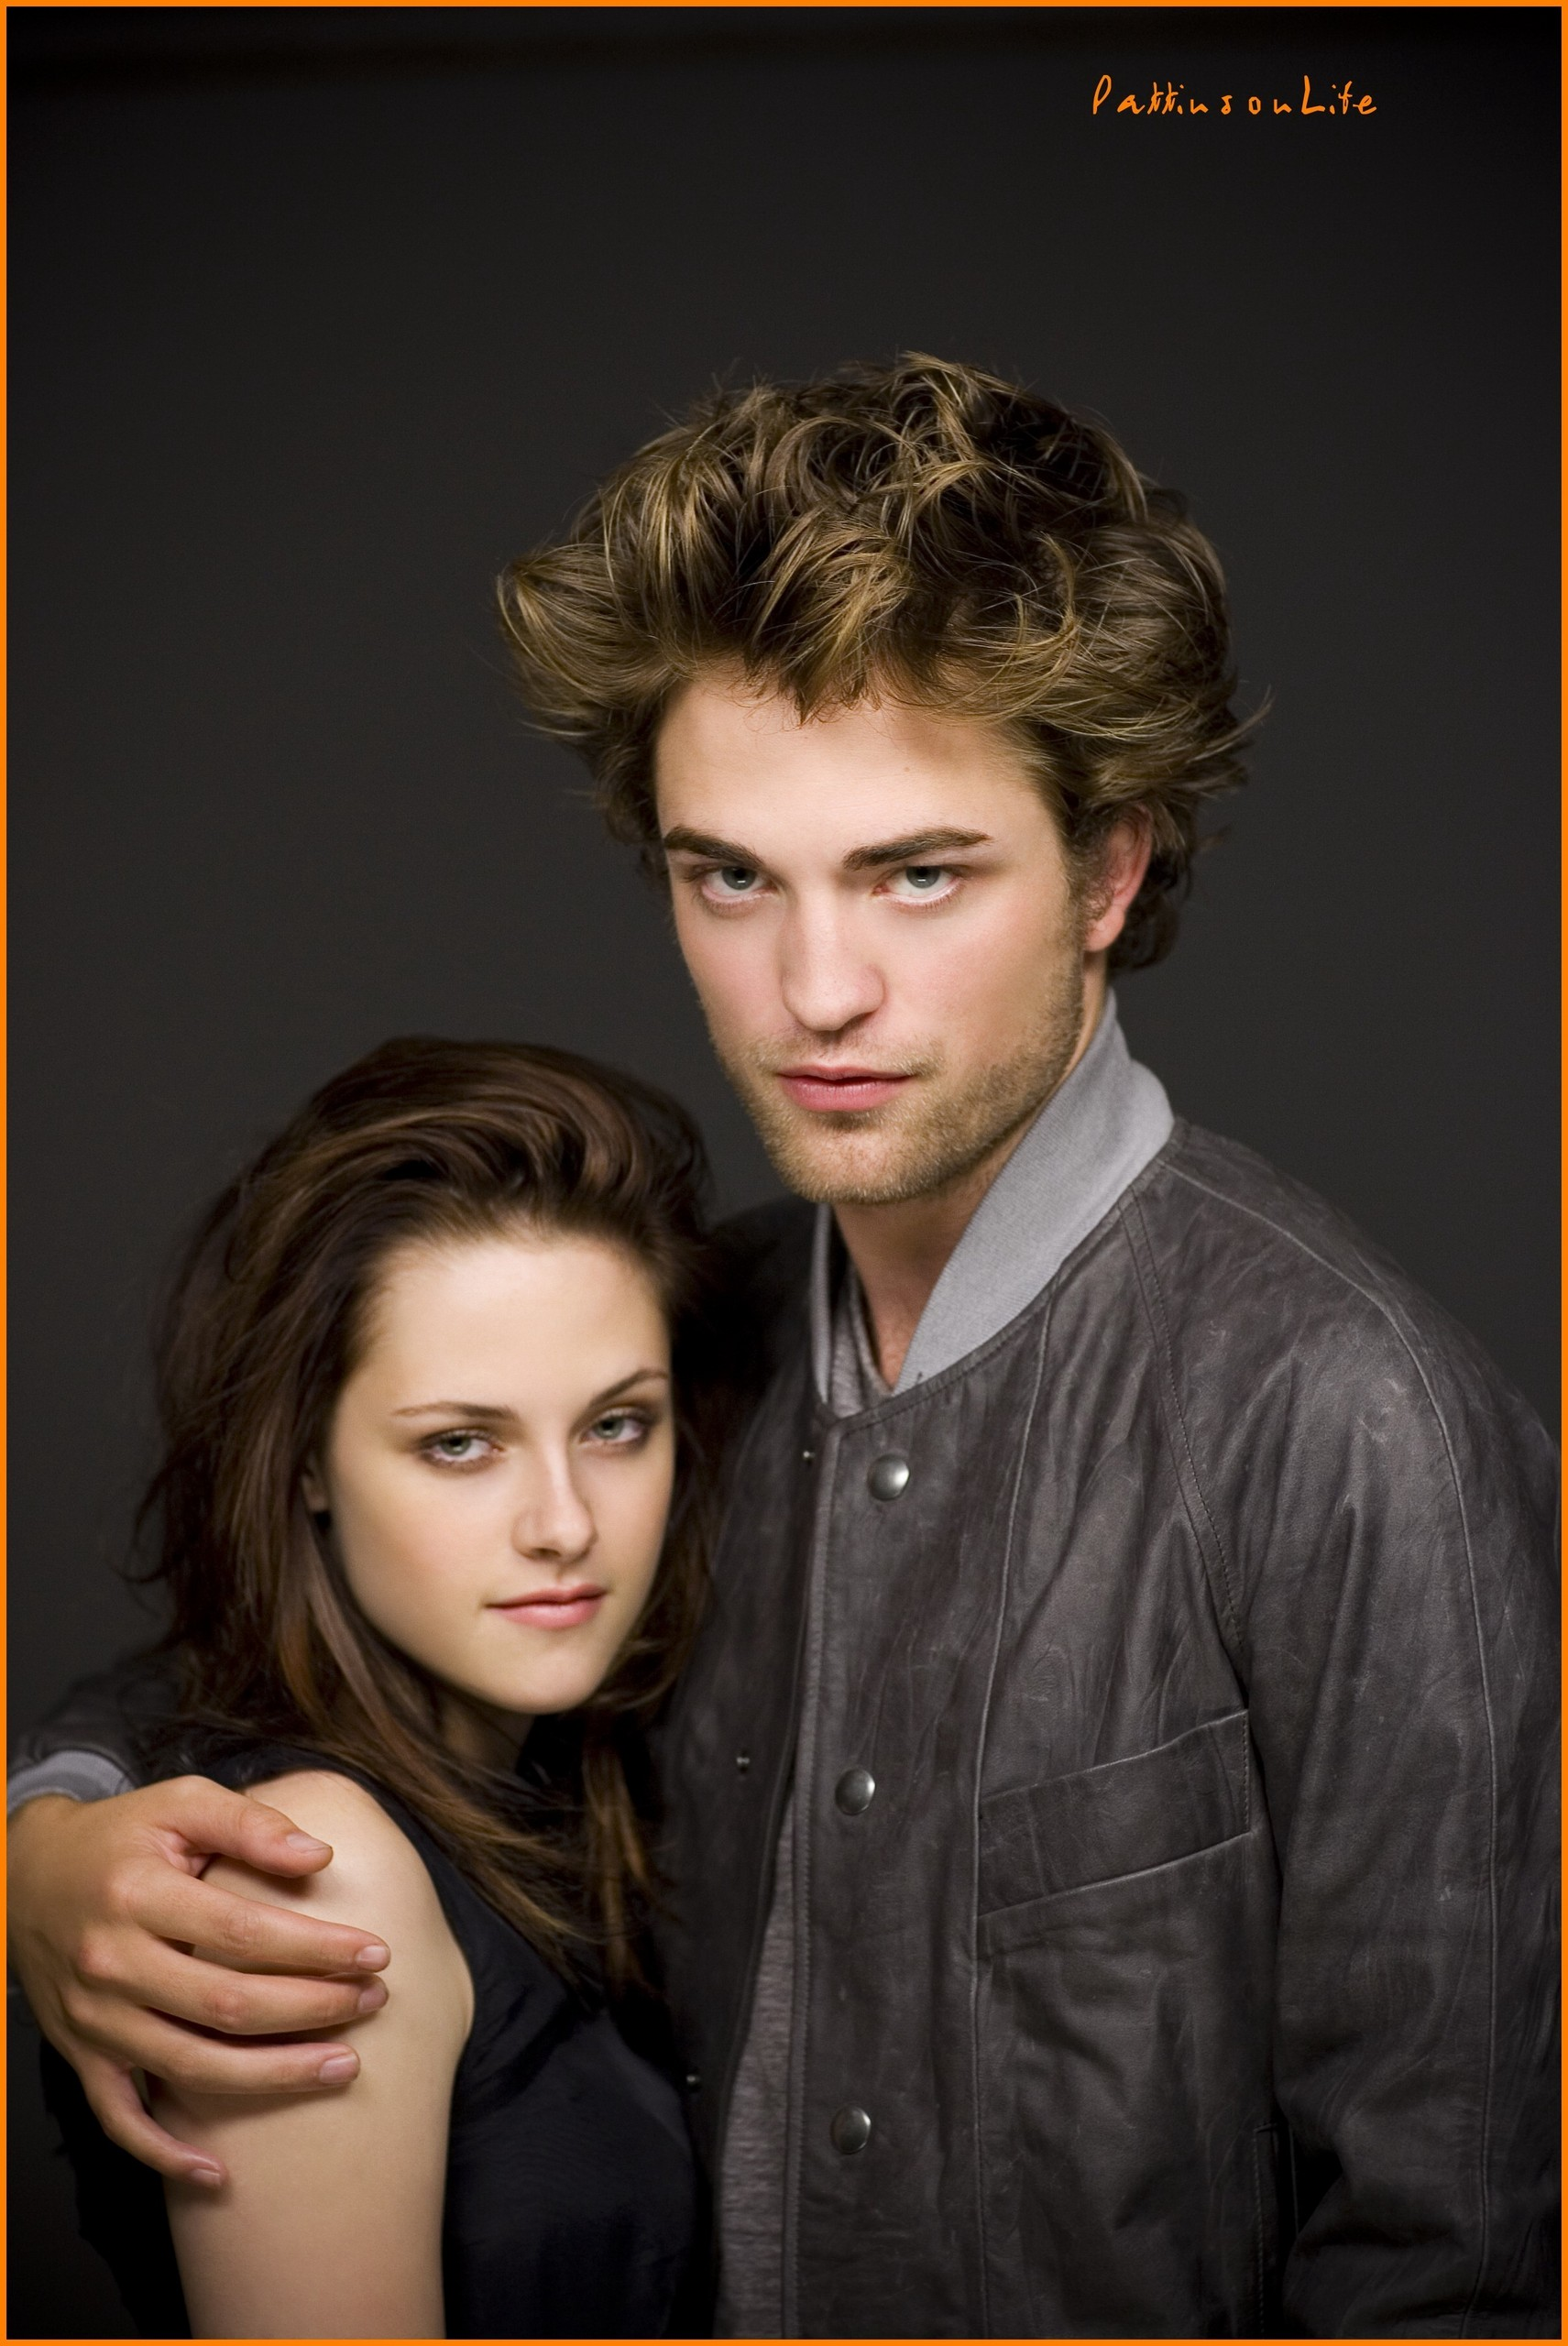 Download this Empire Outtakes Robert Pattinson And Kristen Stewart picture